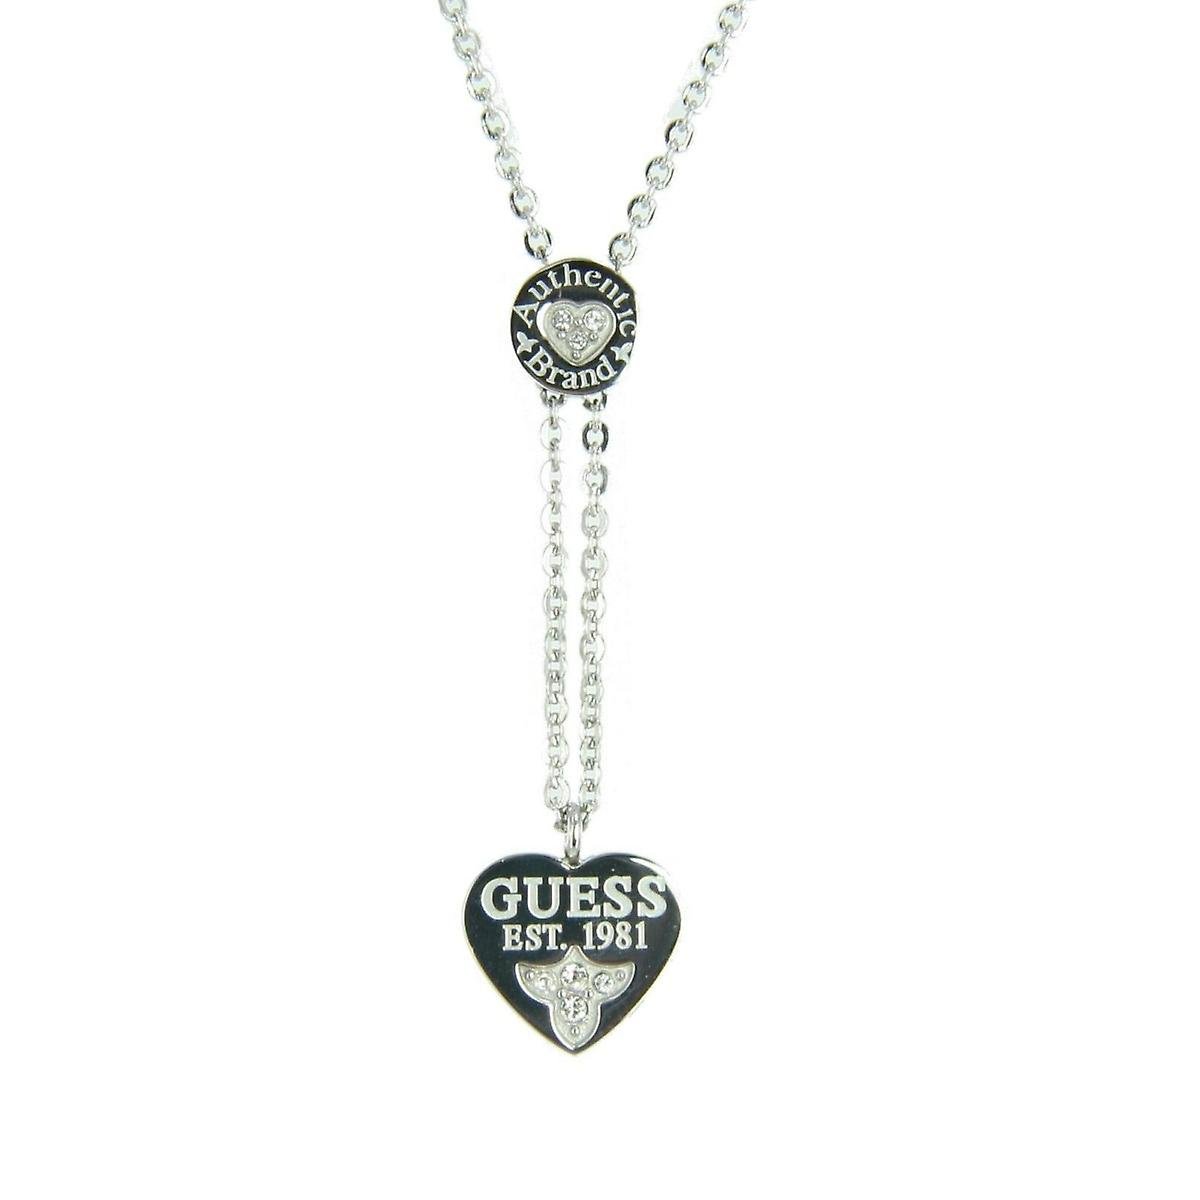 Guess Damen Kette Collier USN81004